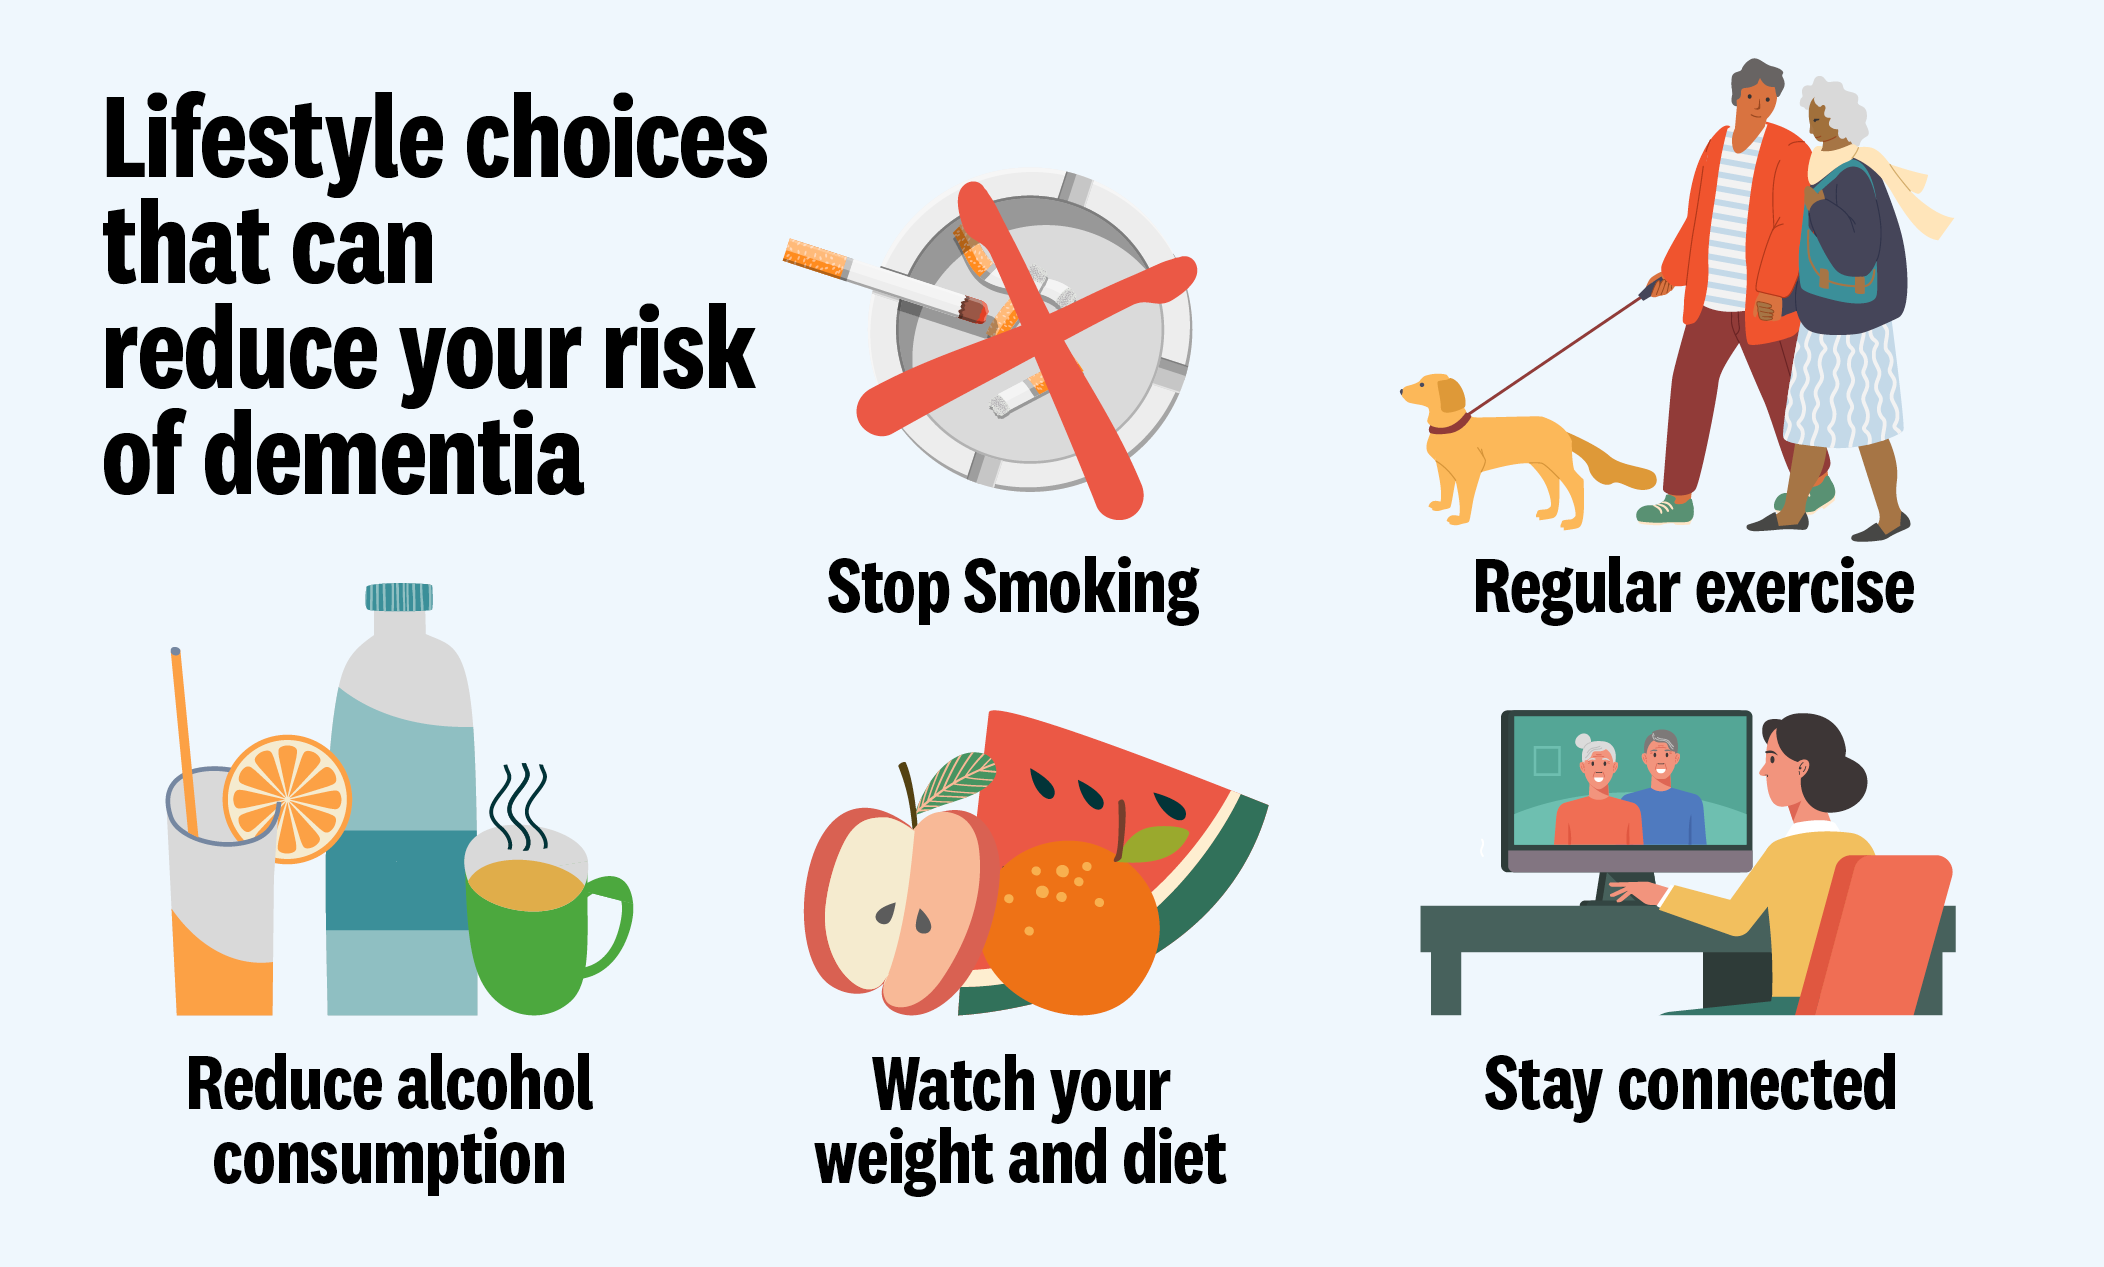 Images of factors that can decrease your dementia risk such as stopping smoking and exercising